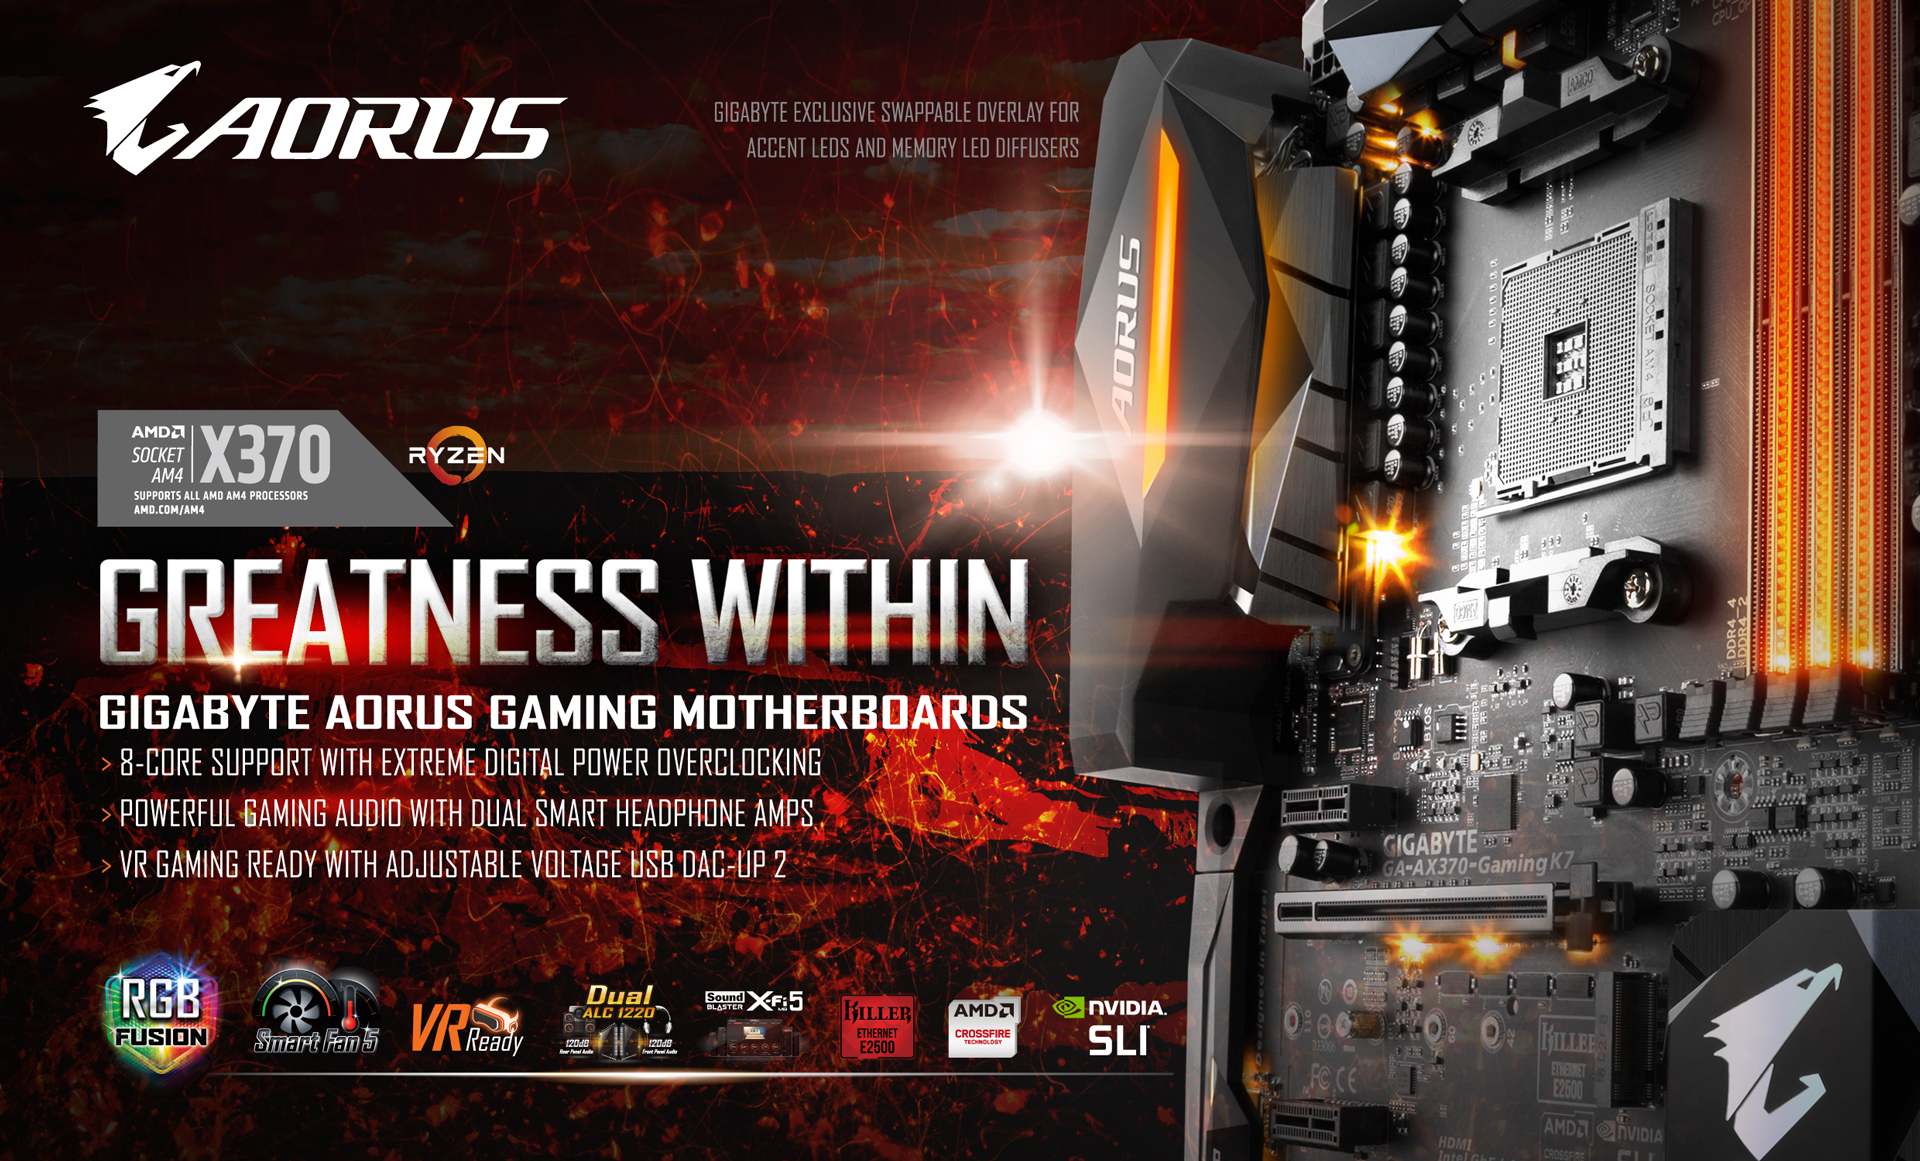 Ga Ax370 Gaming K7 Rev 10 Motherboard Gigabyte Usa Ram 7 Way Plug Wiring Diagram Amd Introduces The Latest Ryzen 2000 Series Processors To Provide Computing Power For Budget Need Gigabytes Full Line Of Am4 Chipset